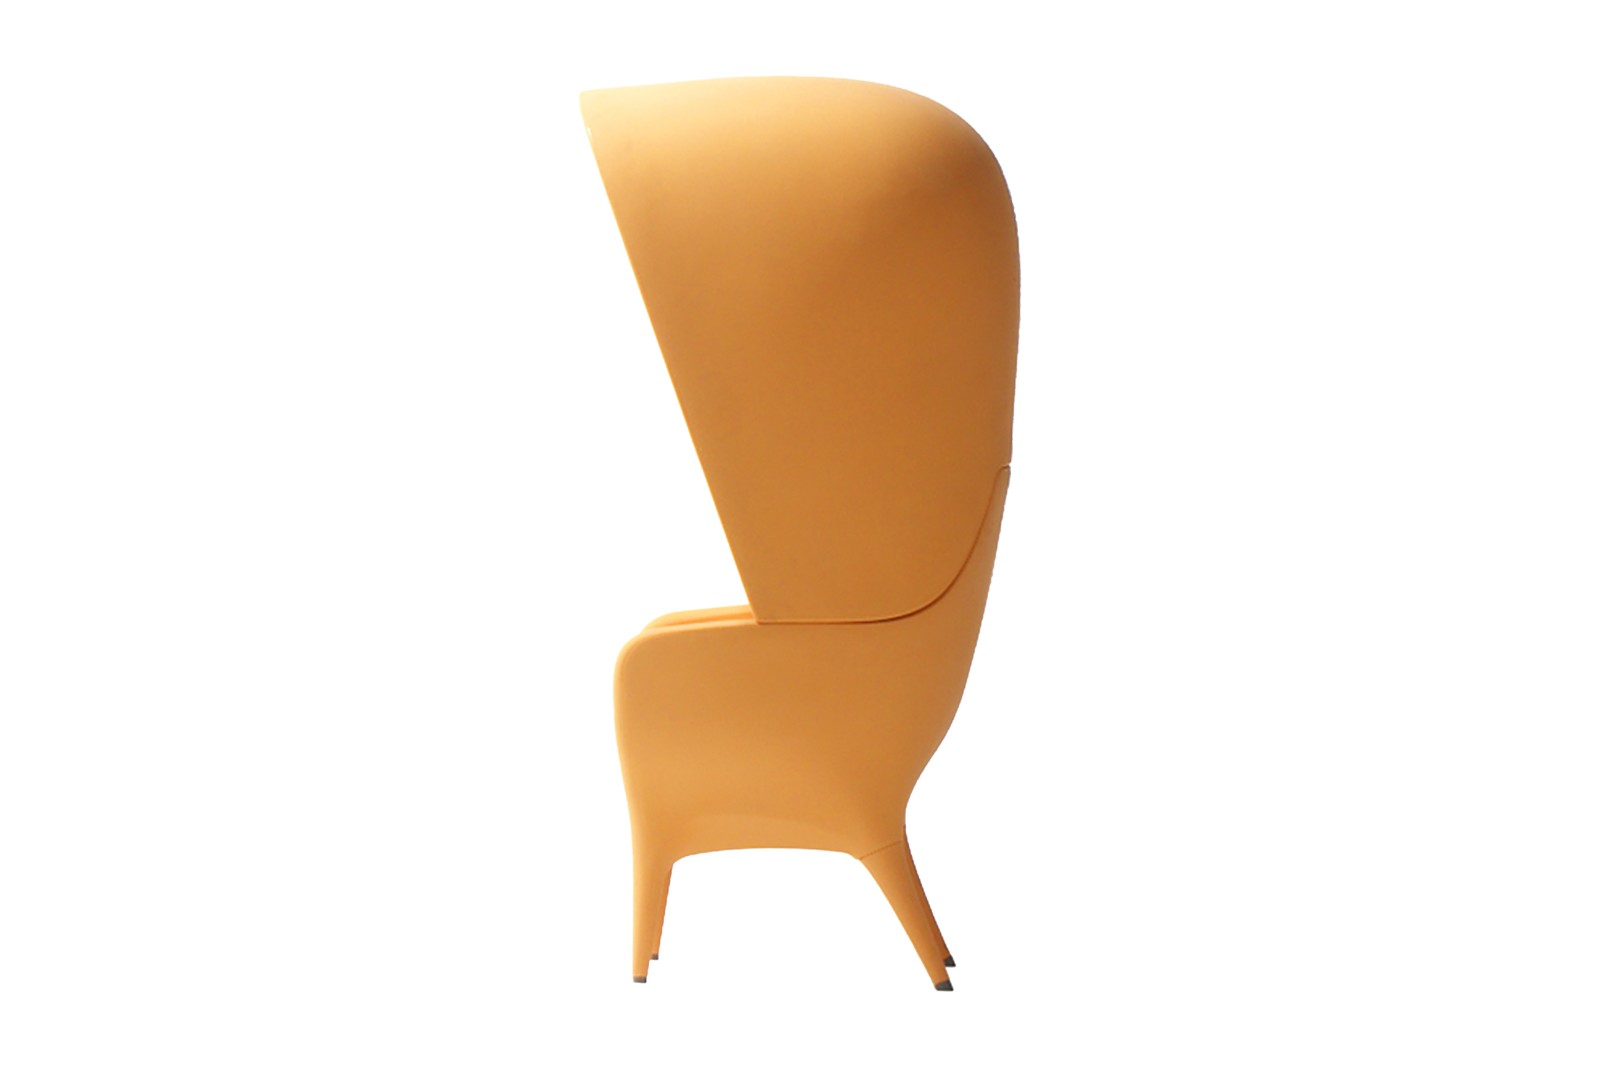 Showtime 10 Armchair with Cover - Outdoor Orange